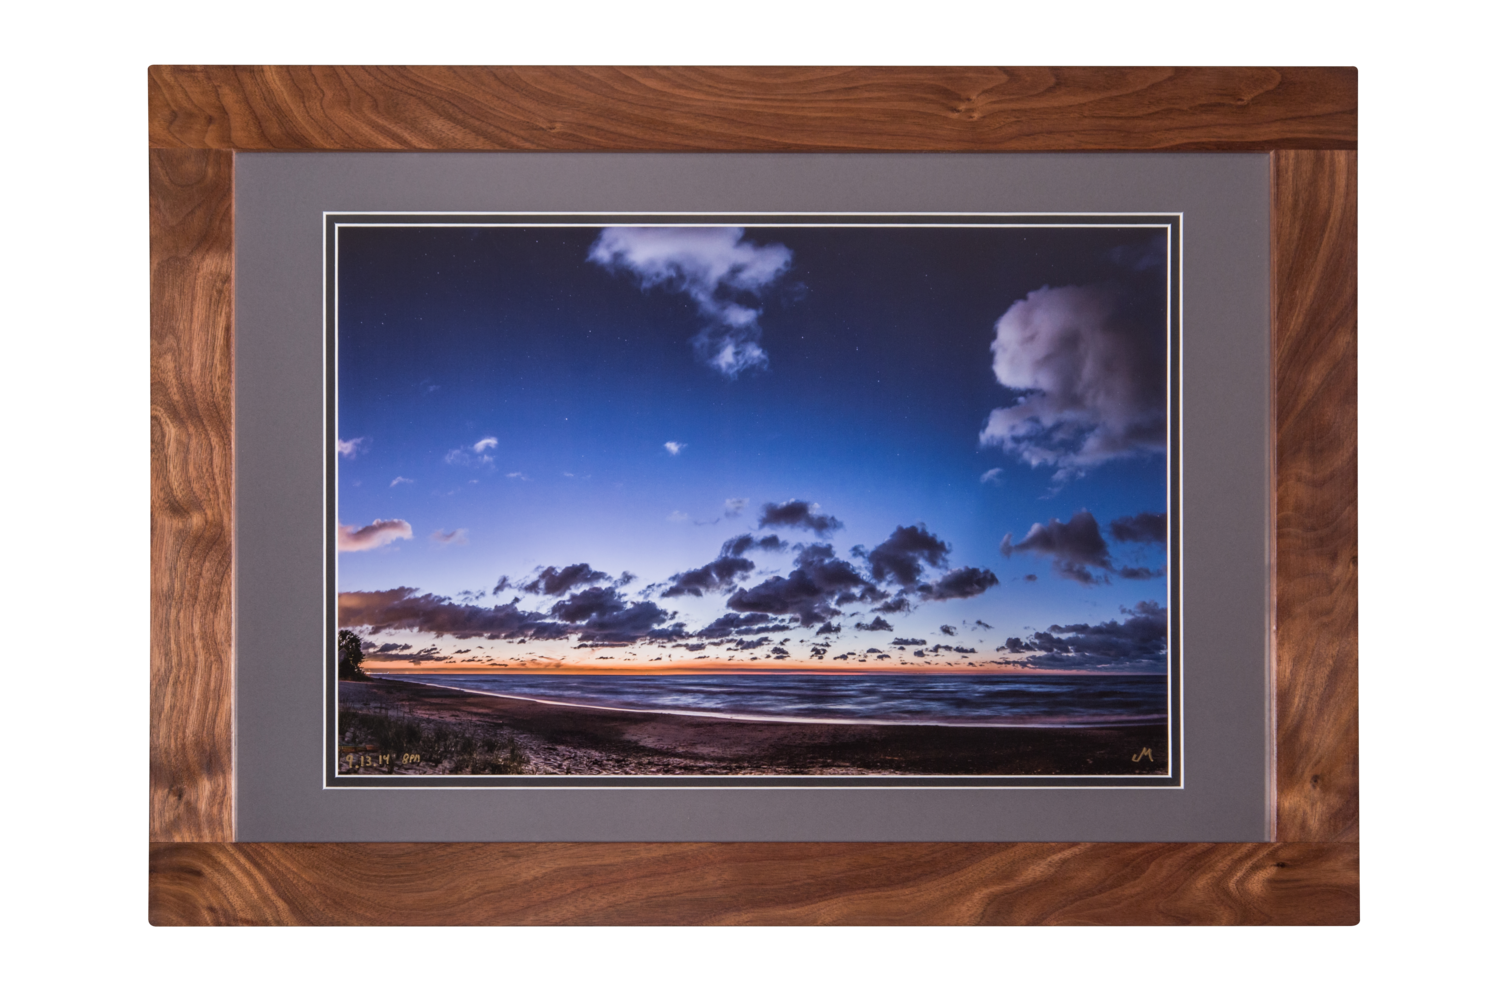 091314 8pm 15x225 Hand Crafted Walnut Frame Photography By